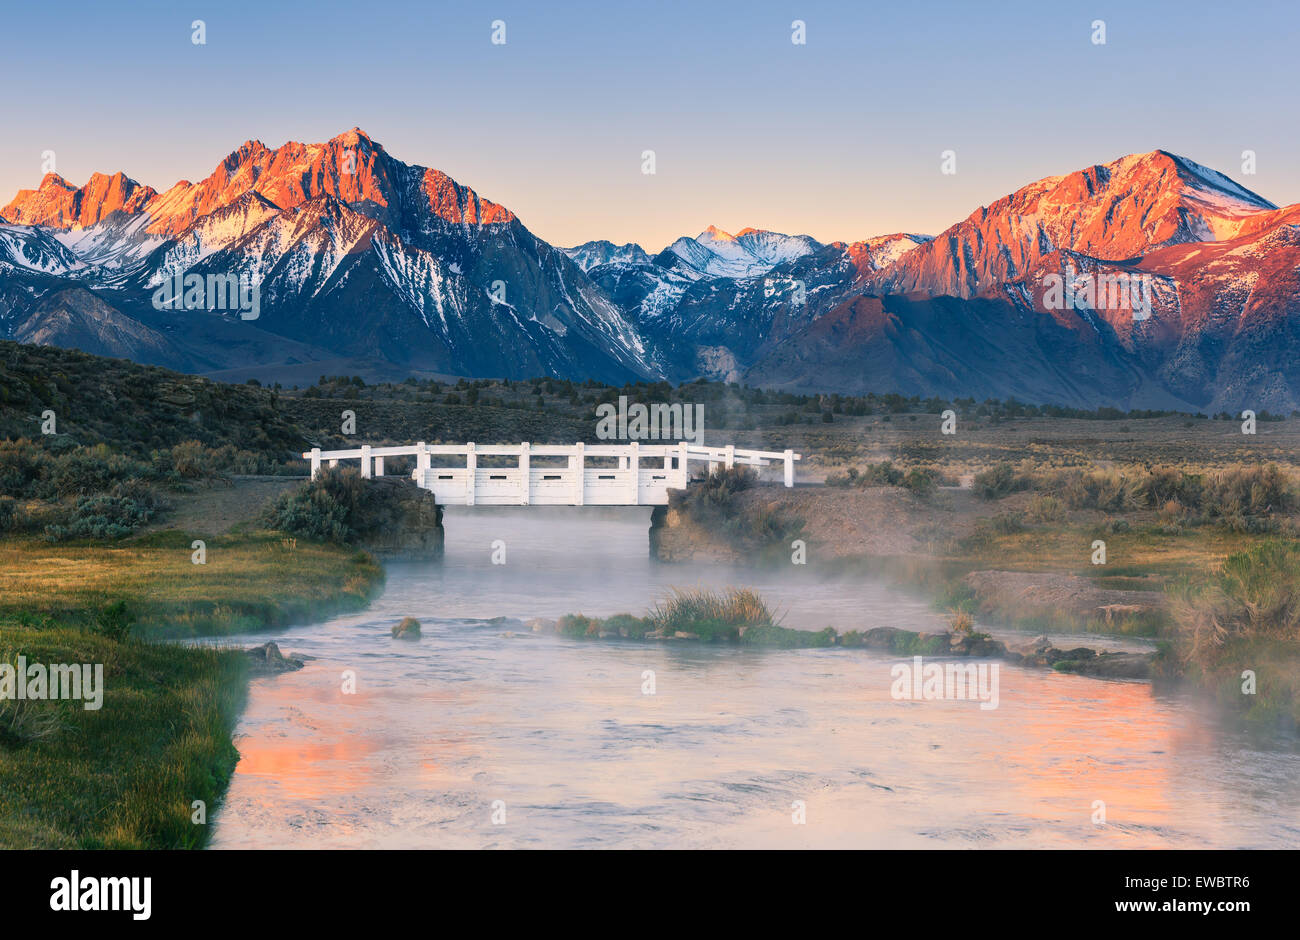 Sunrise on the Sierra Nevada seen from Hot Creek, California, USA. - Stock Image